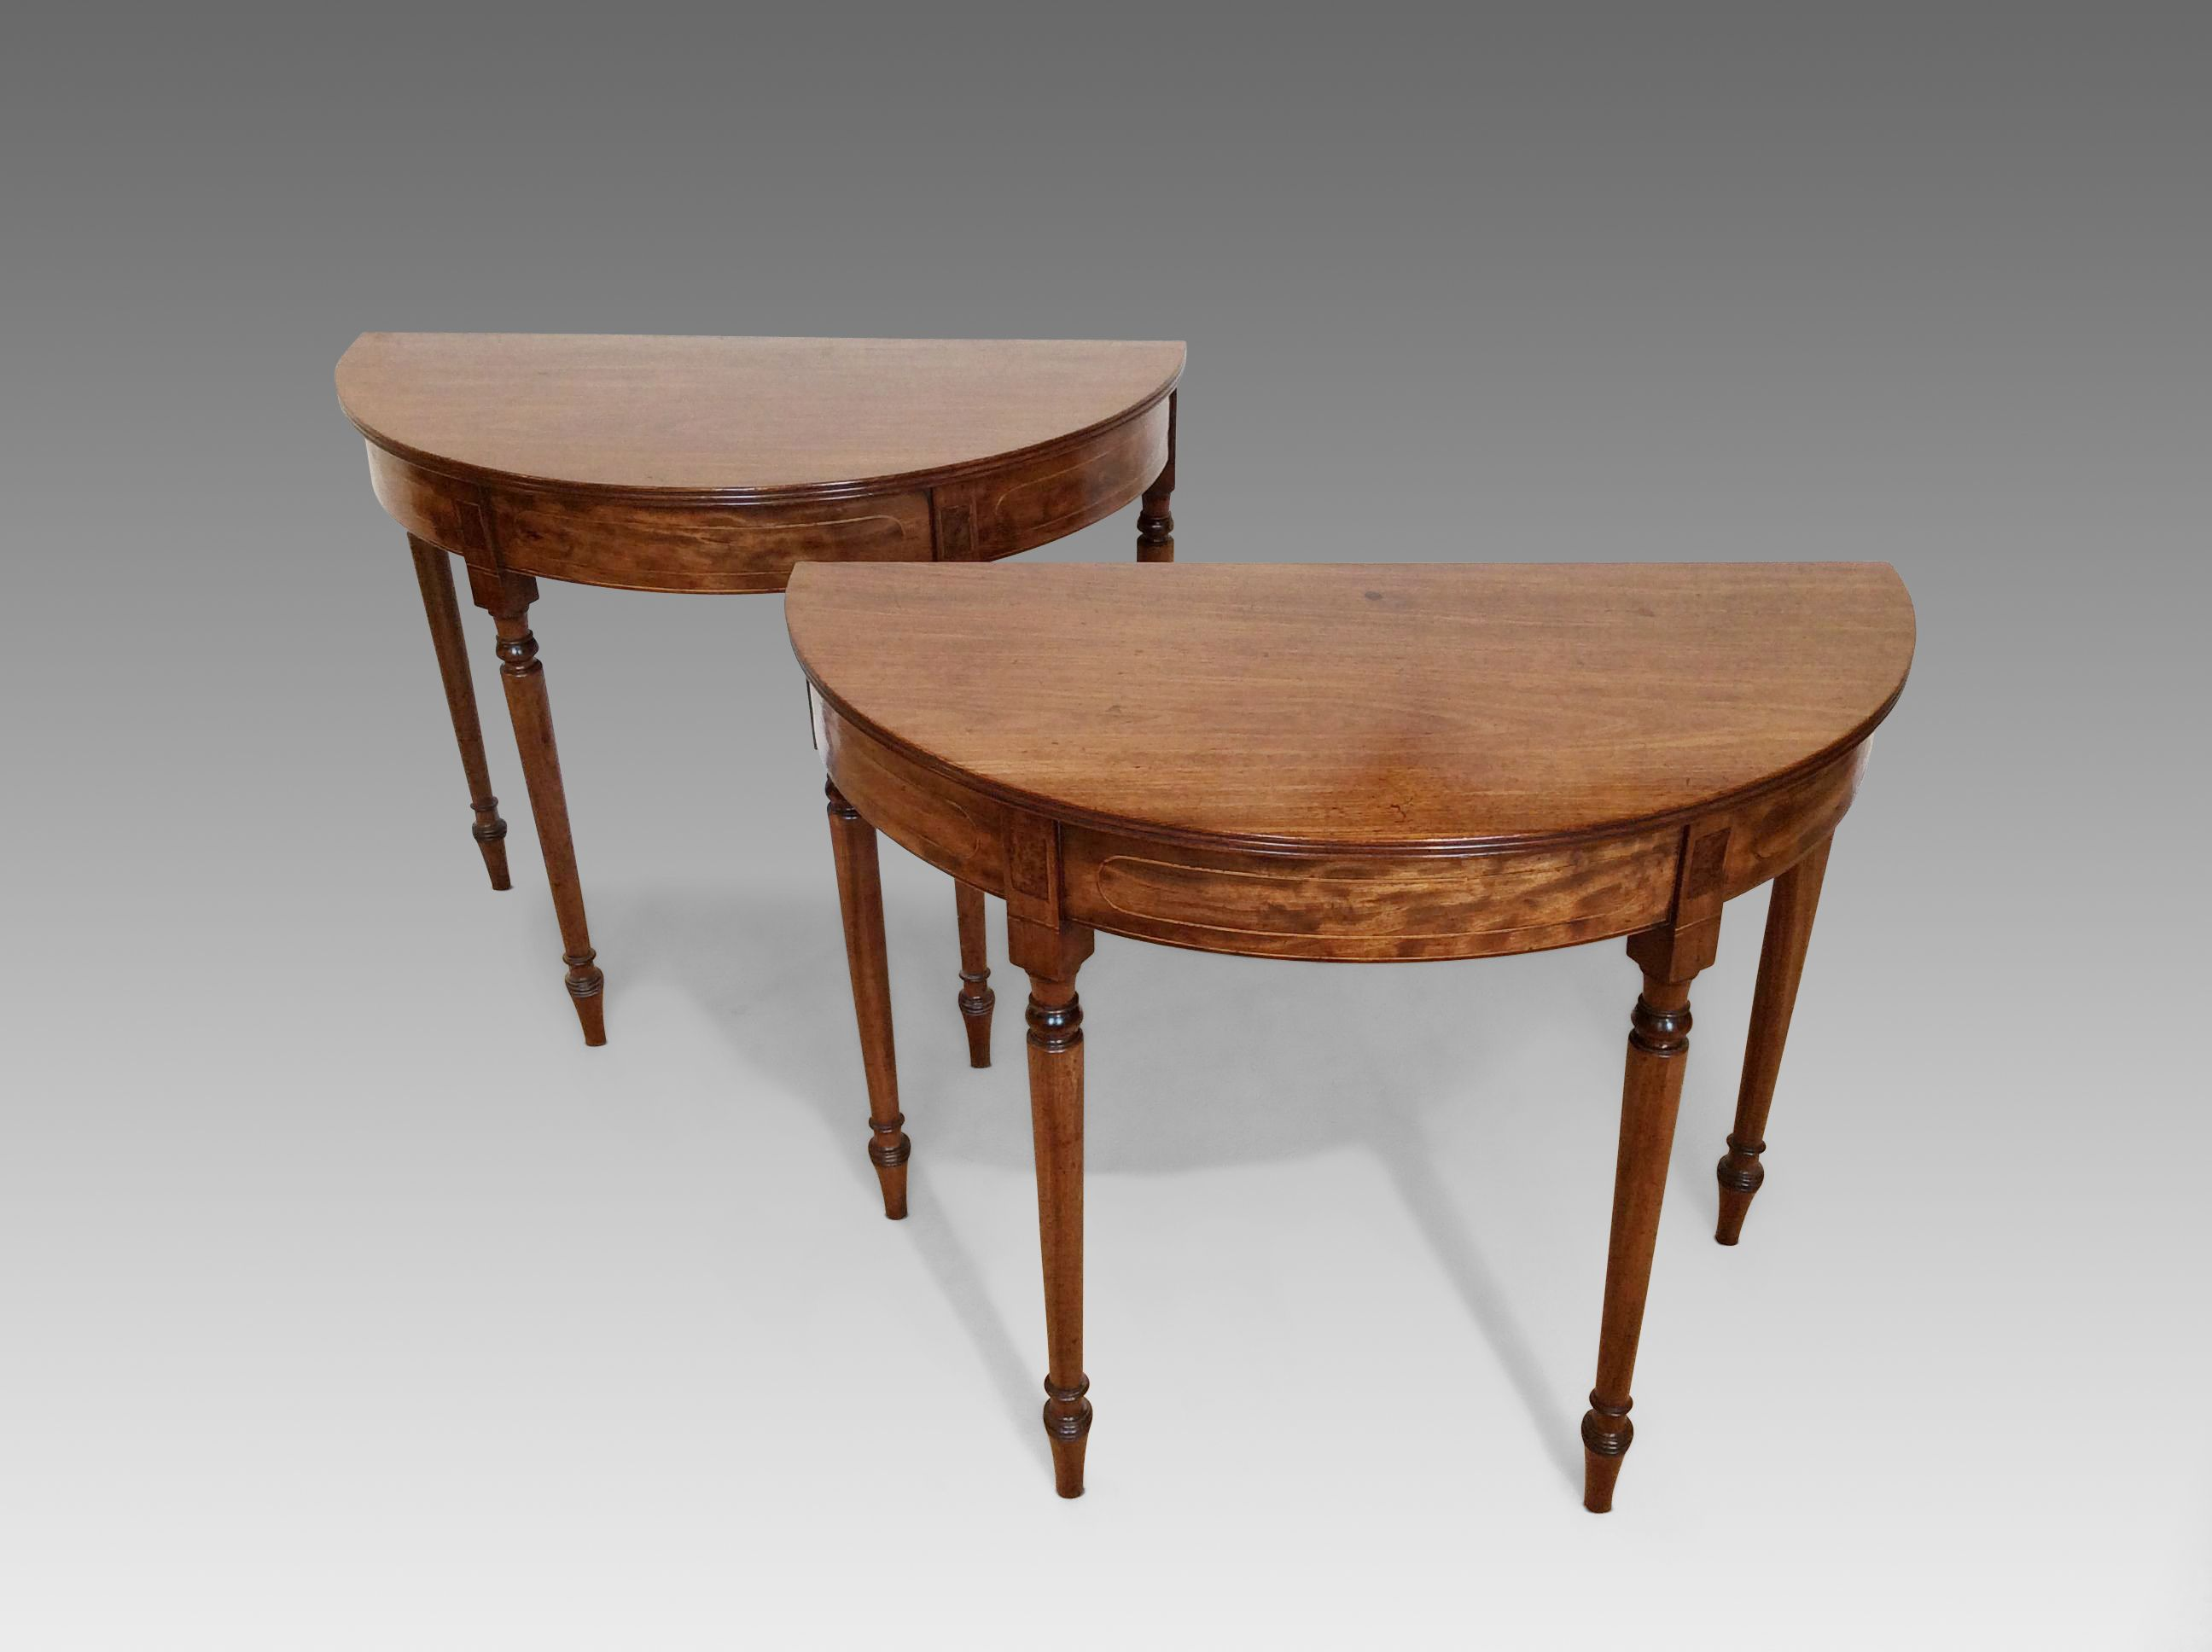 ANTIQUE GEORGE III SMALL DINING TABLE OF SMALL SIZE